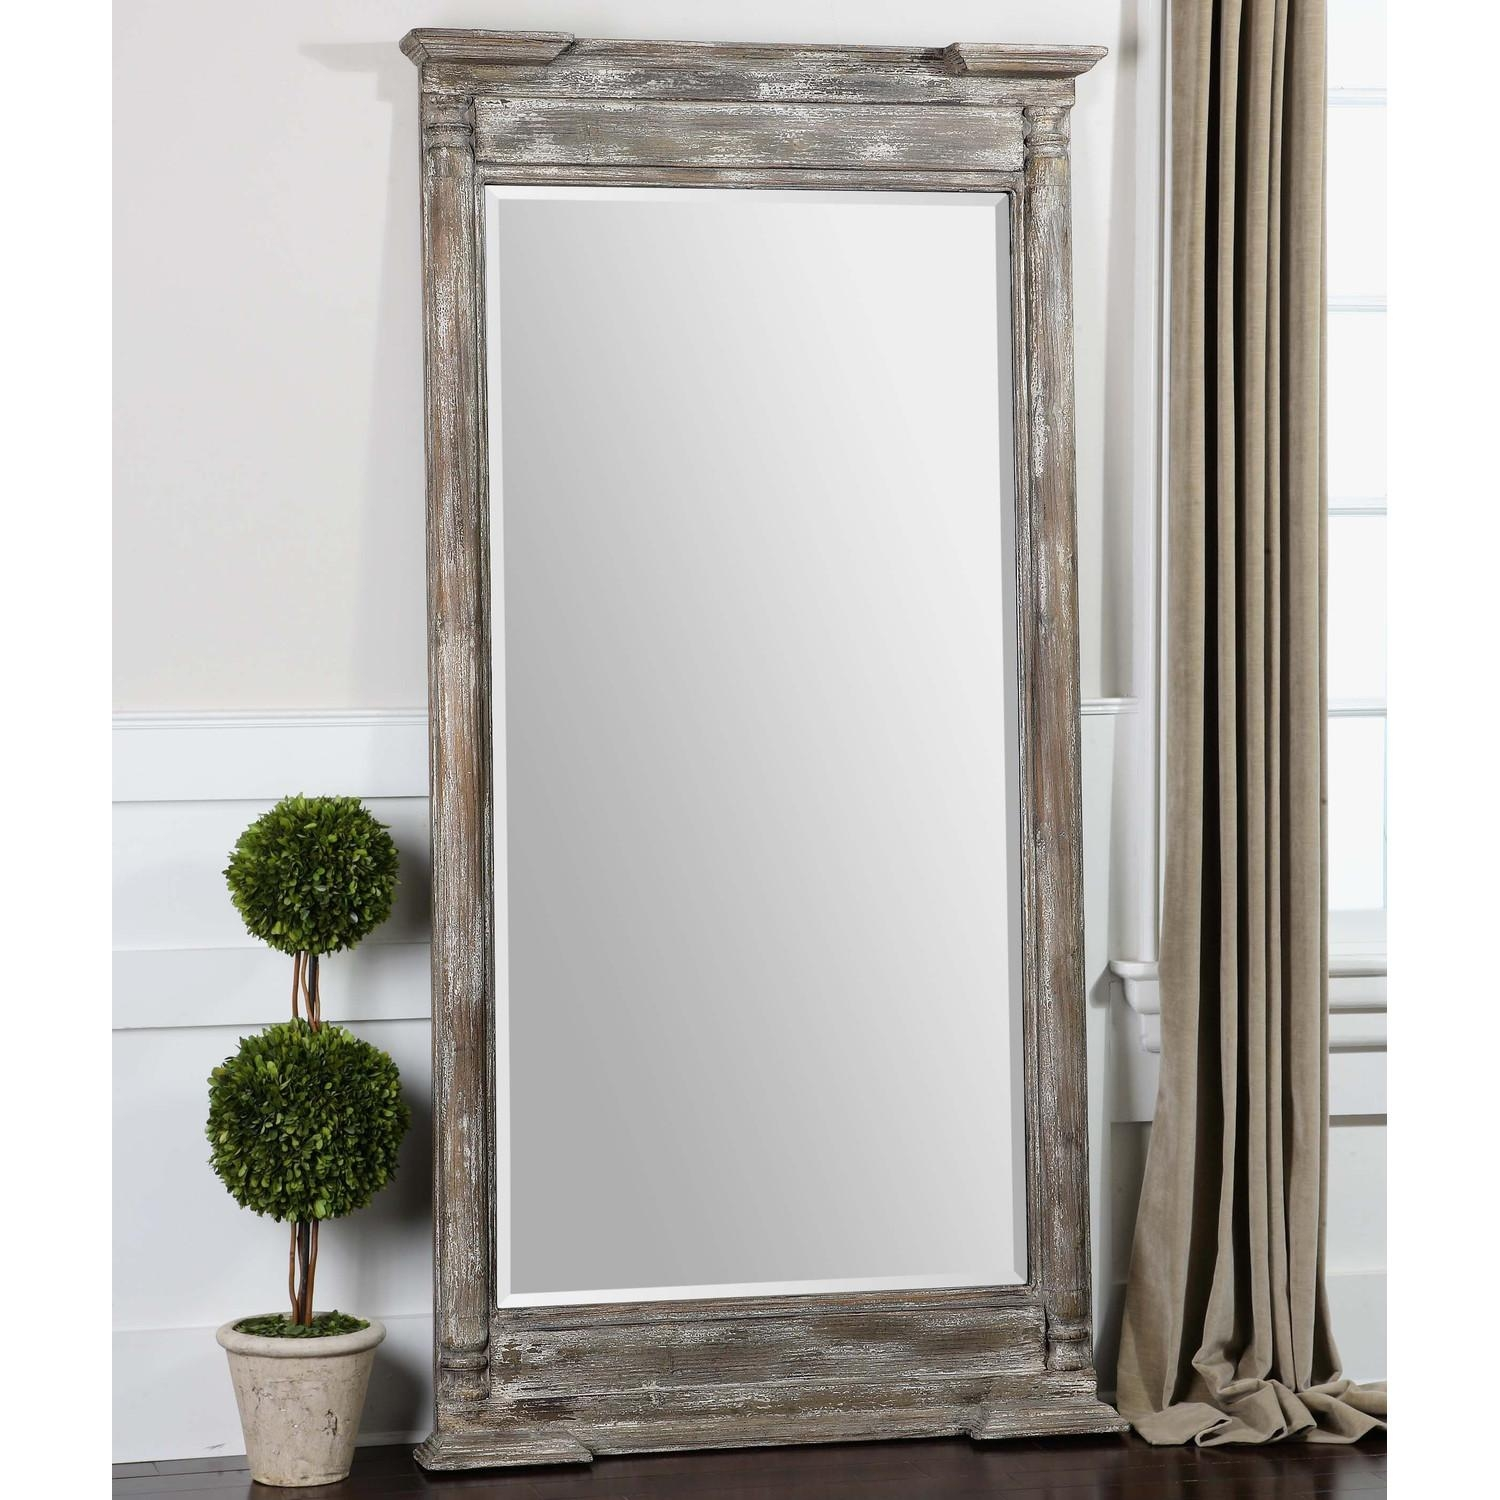 Extra Large Wall Mirrors 16 Cute Interior And Full Length Wall Intended For Extra Large Full Length Mirror (Image 15 of 20)